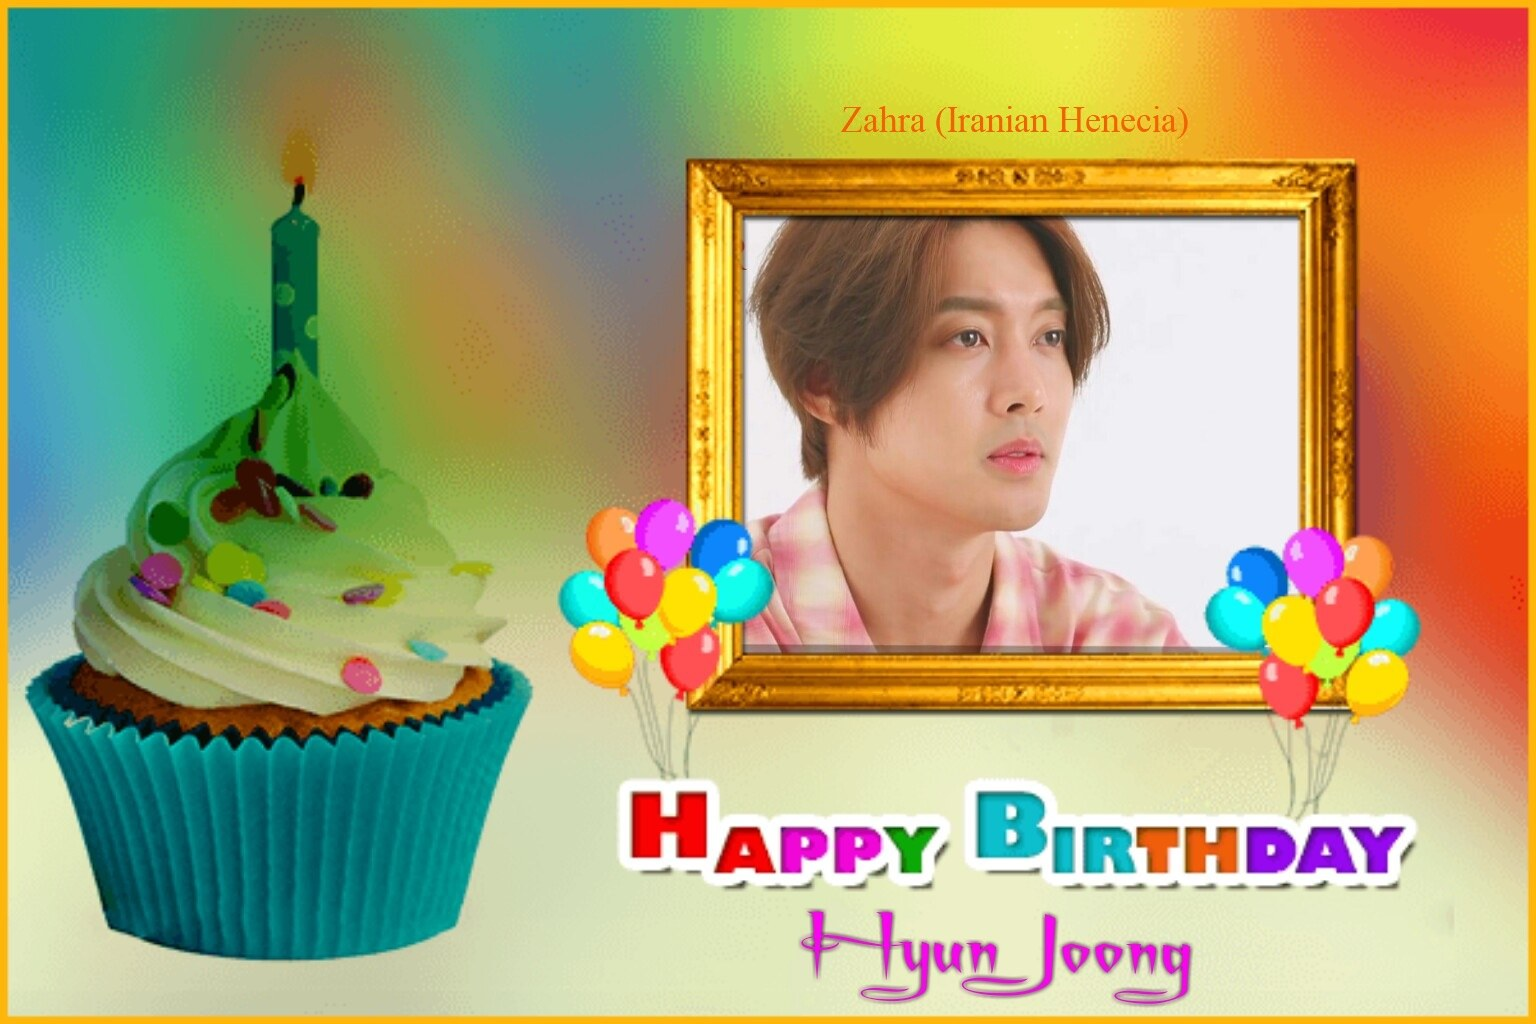 (My Fanart from Happy 32th Birtday of KHJ (7